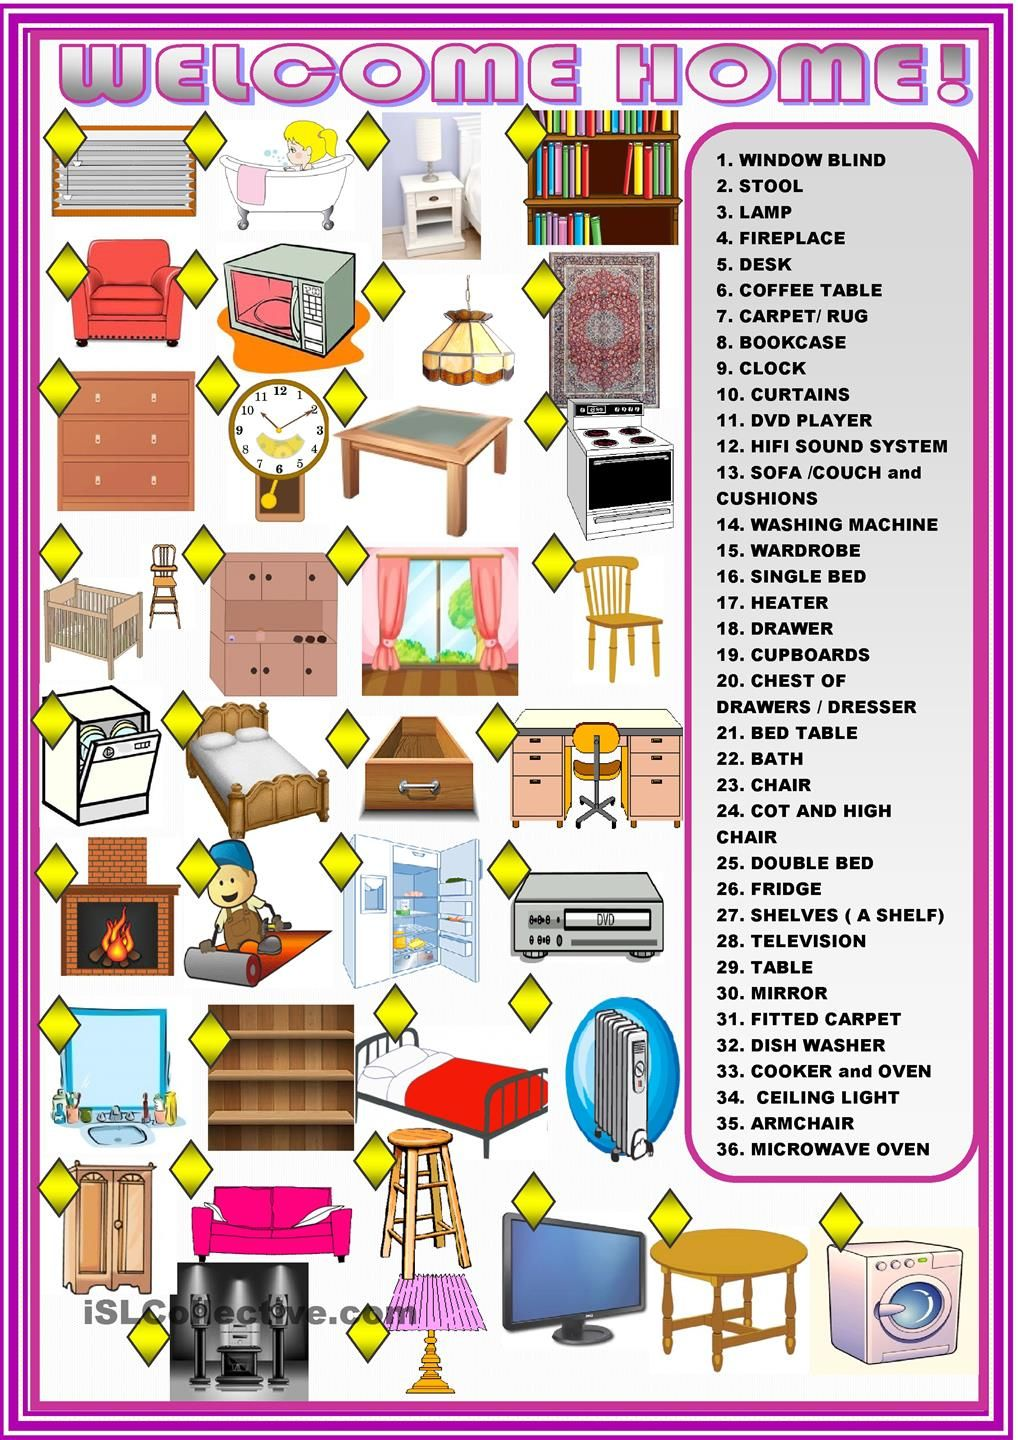 welcome home furniture matching activity ingles